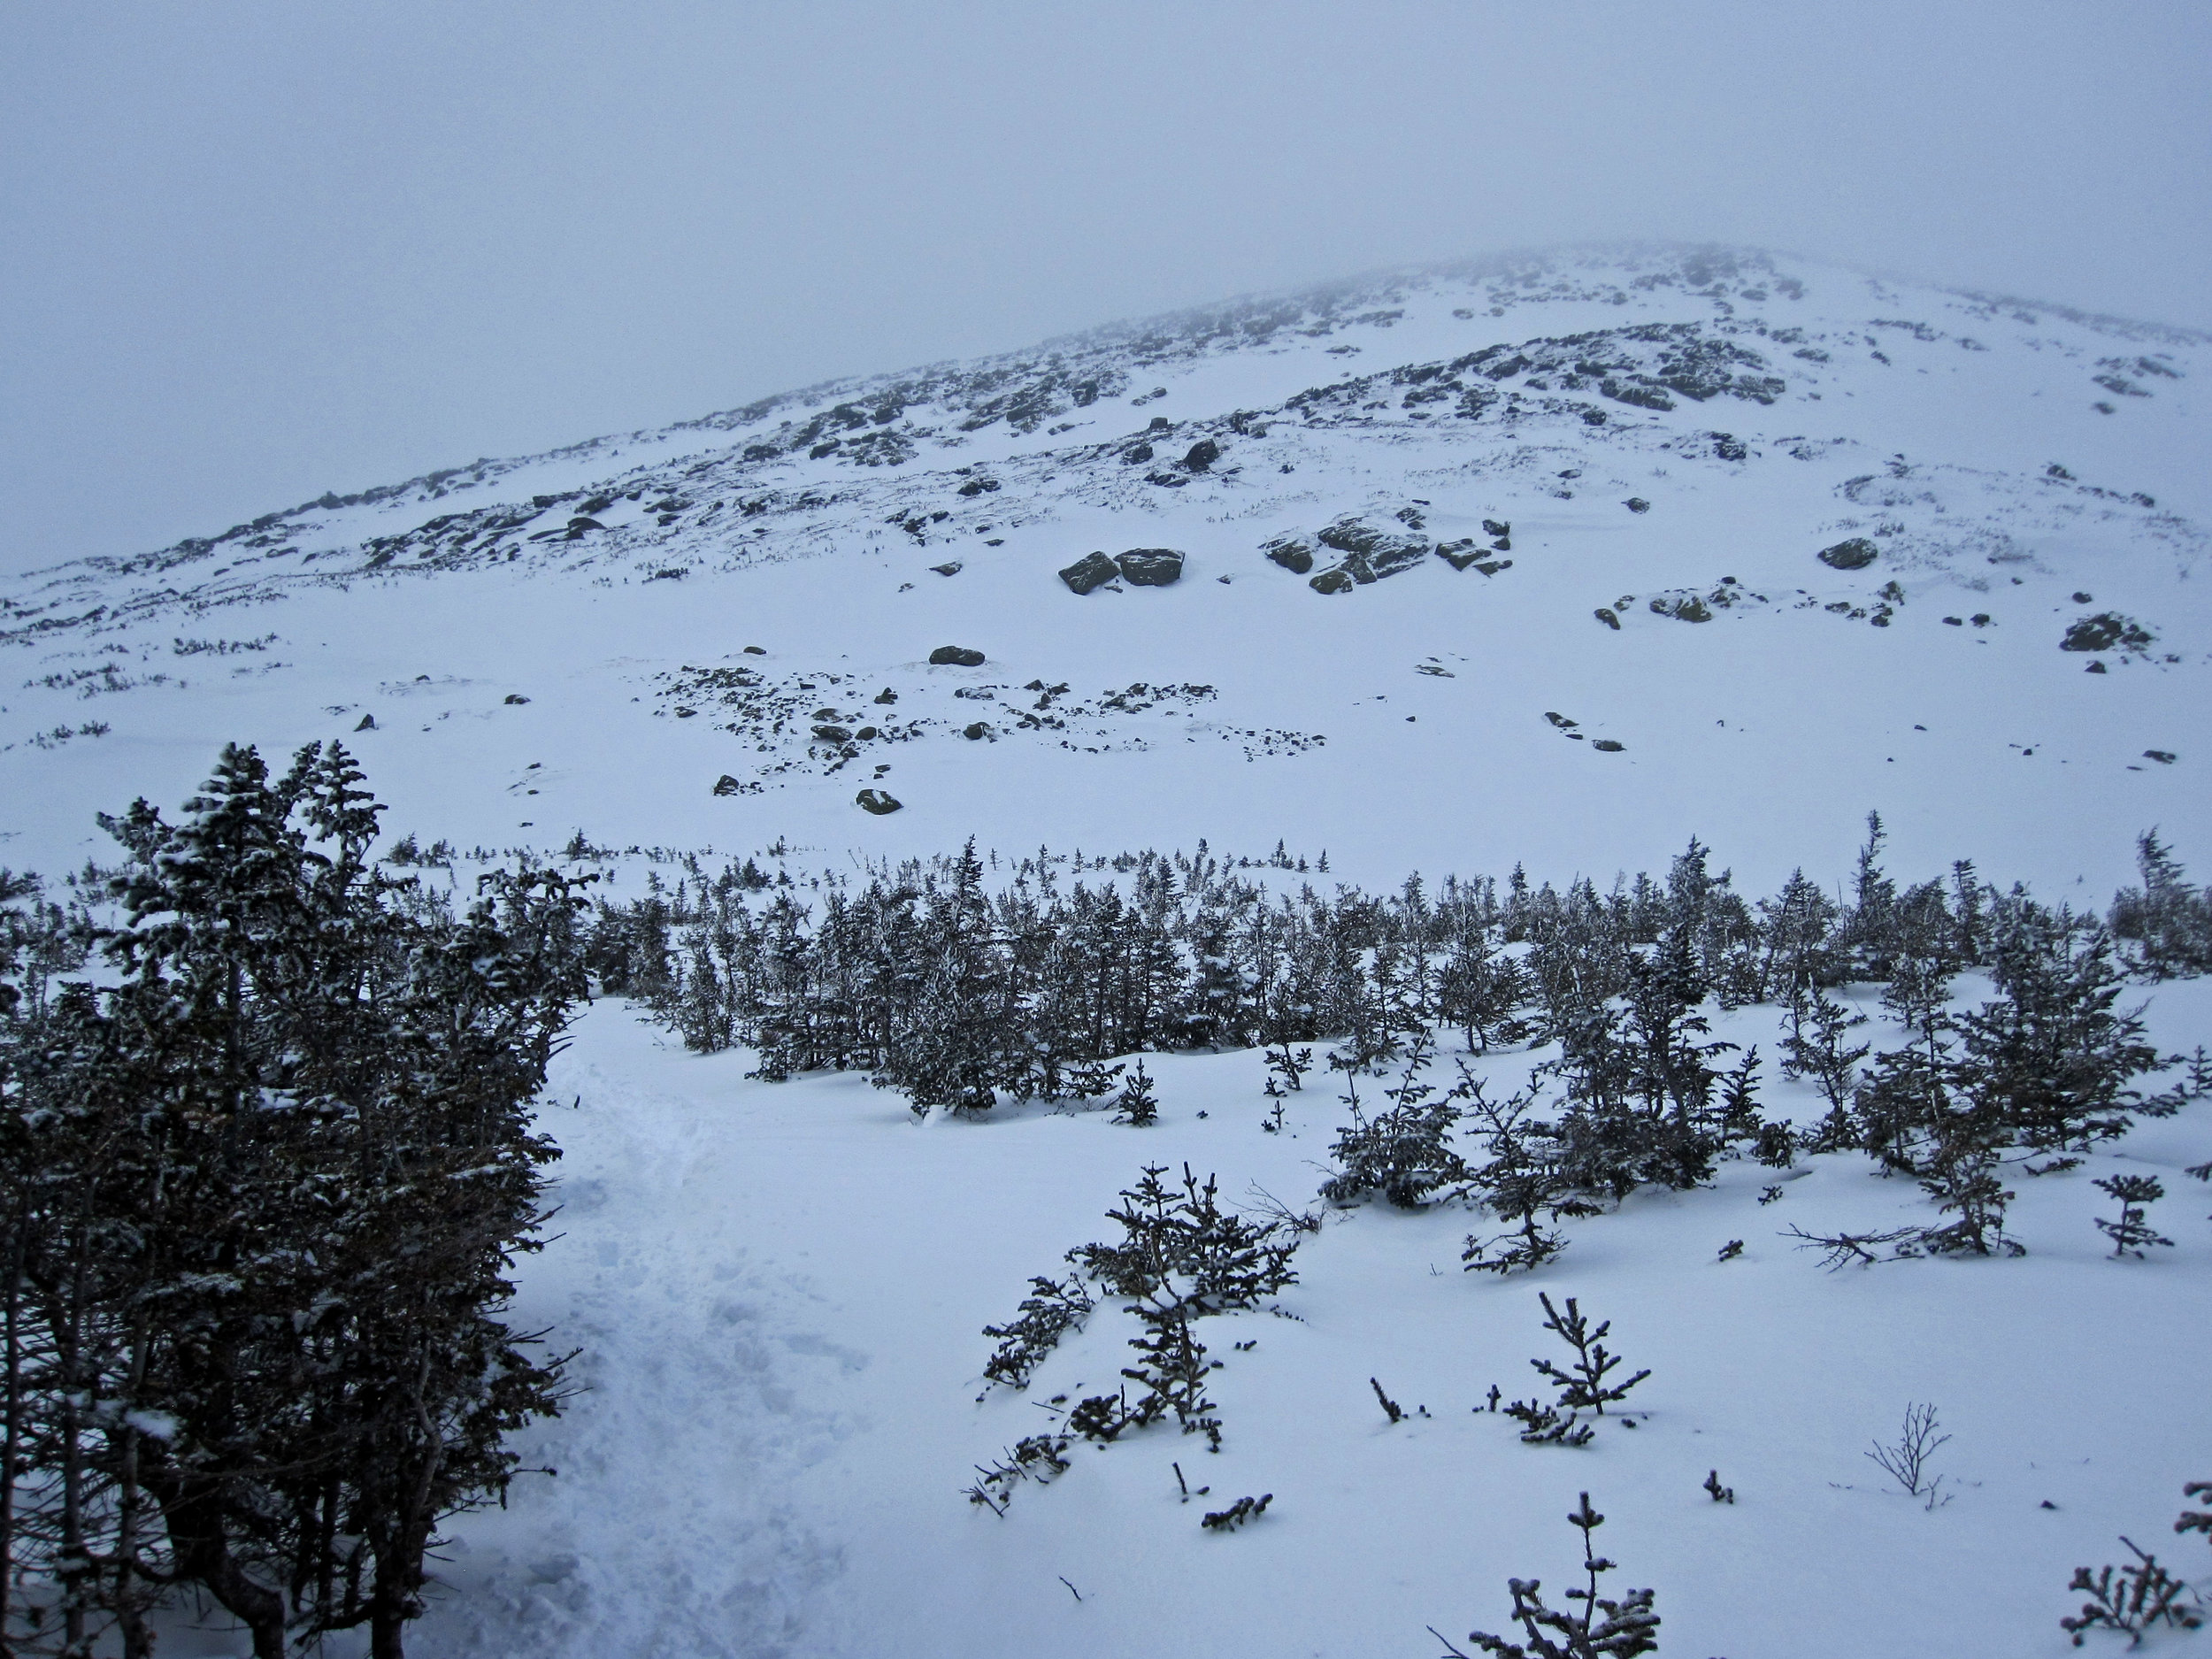 Getting closer to the summit. These are the last of the trees before getting to the tundra.